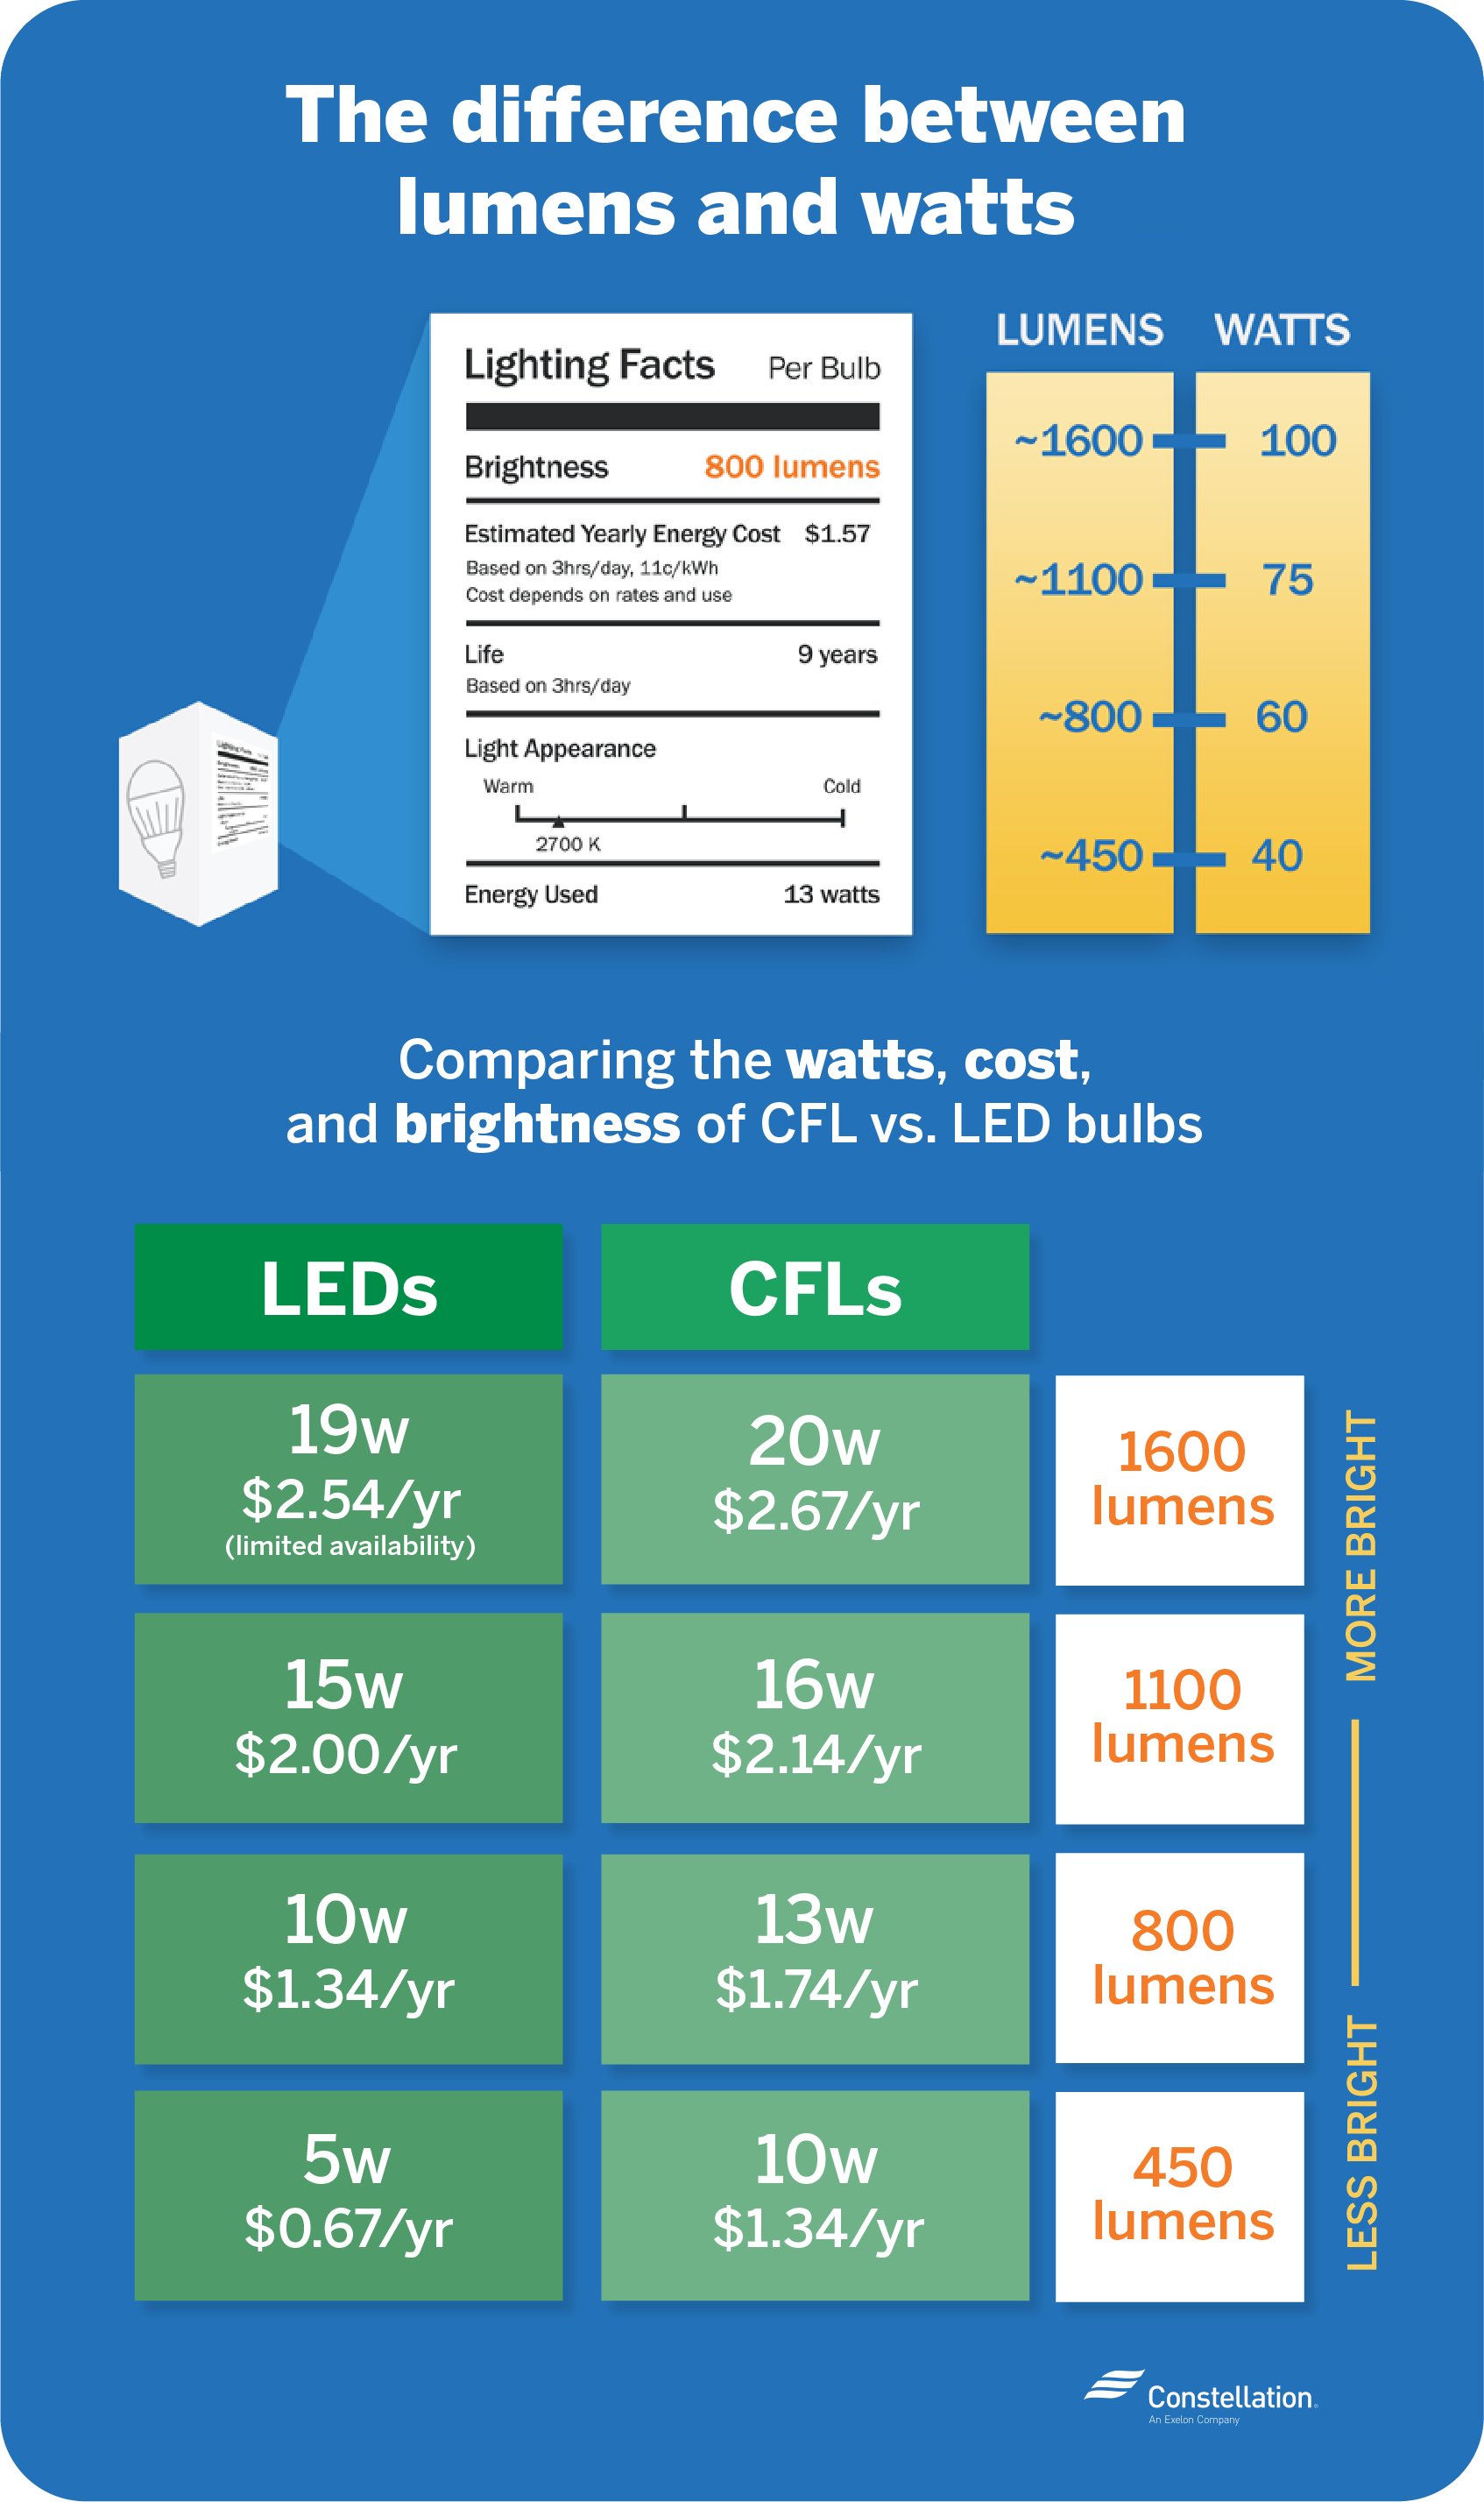 The difference between lumens and watts